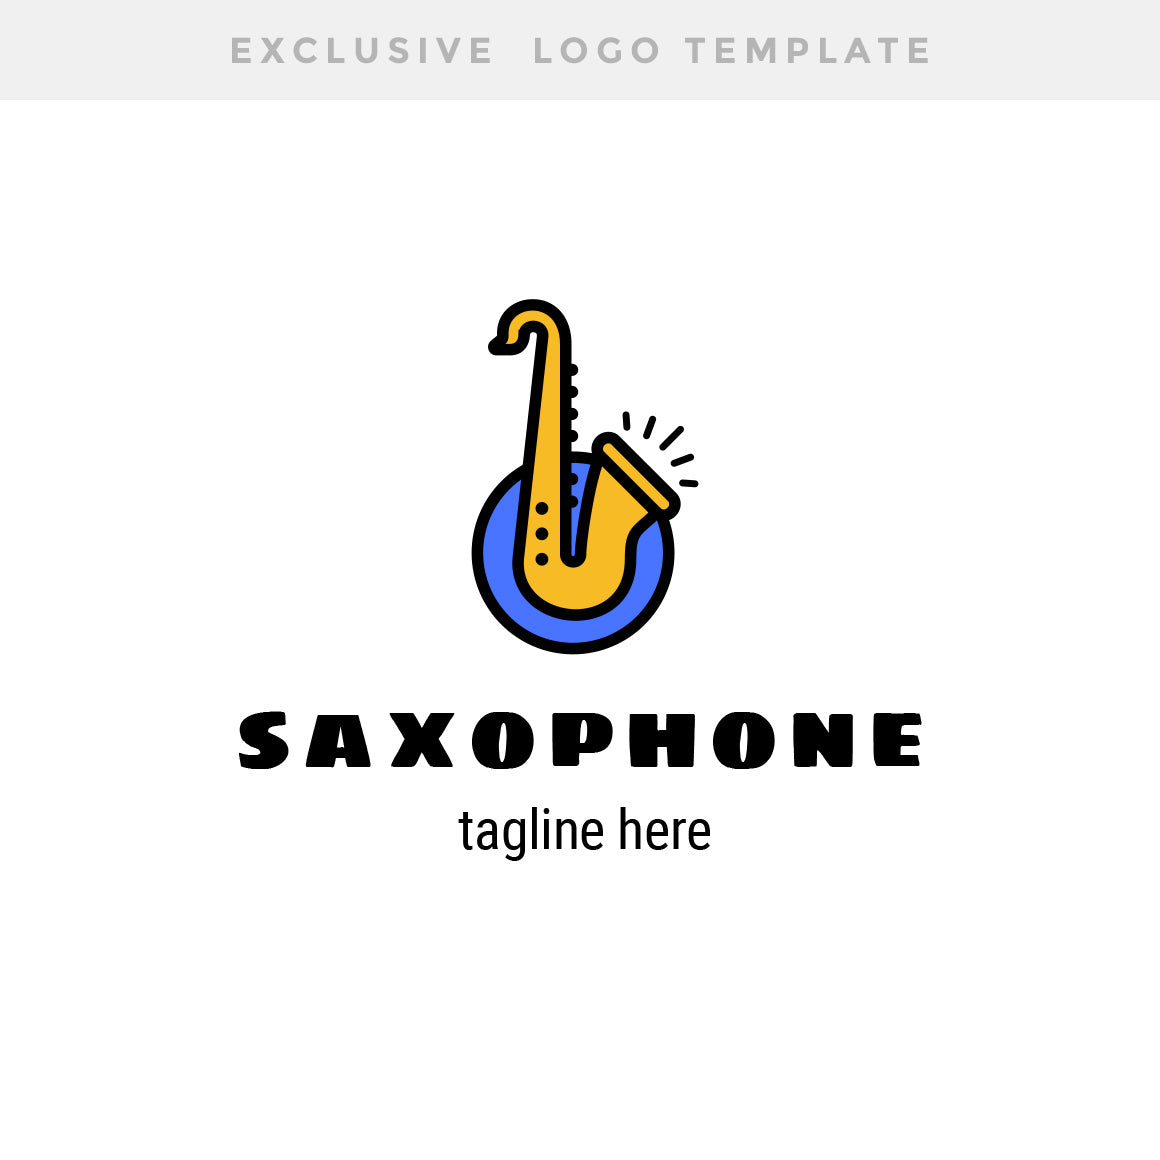 Saxophone Exclusive Logo Template